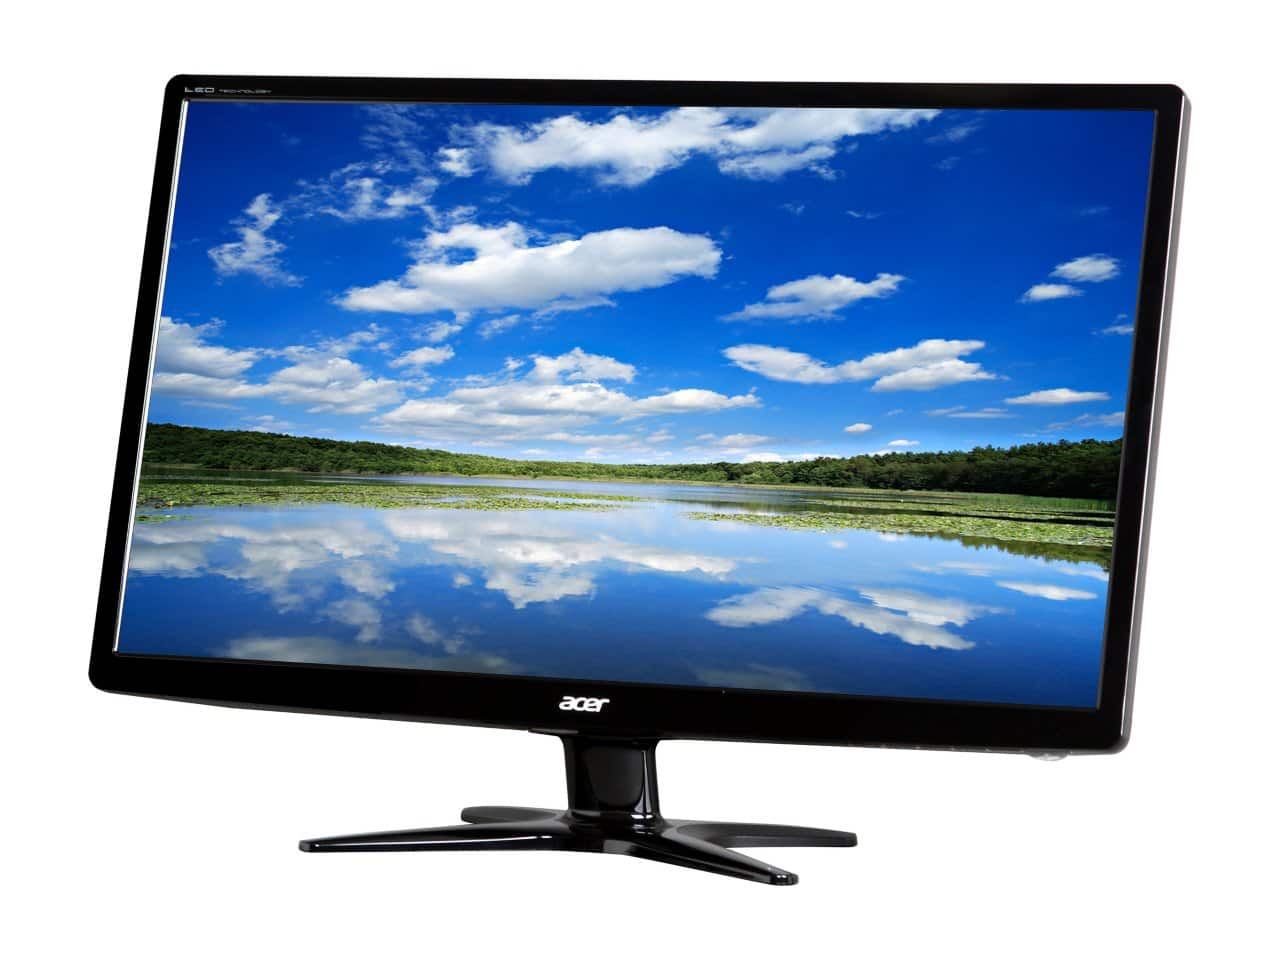 """24"""" Acer G6 Series 1920x1080 5ms TN Panel LED Monitor for $99.99 AC, 27"""" Sceptre E275W-1920 1920x1080 5ms HDMI LED Monitor w/ Speakers for $129.99 AC + S&H & More @ Newegg.com"""